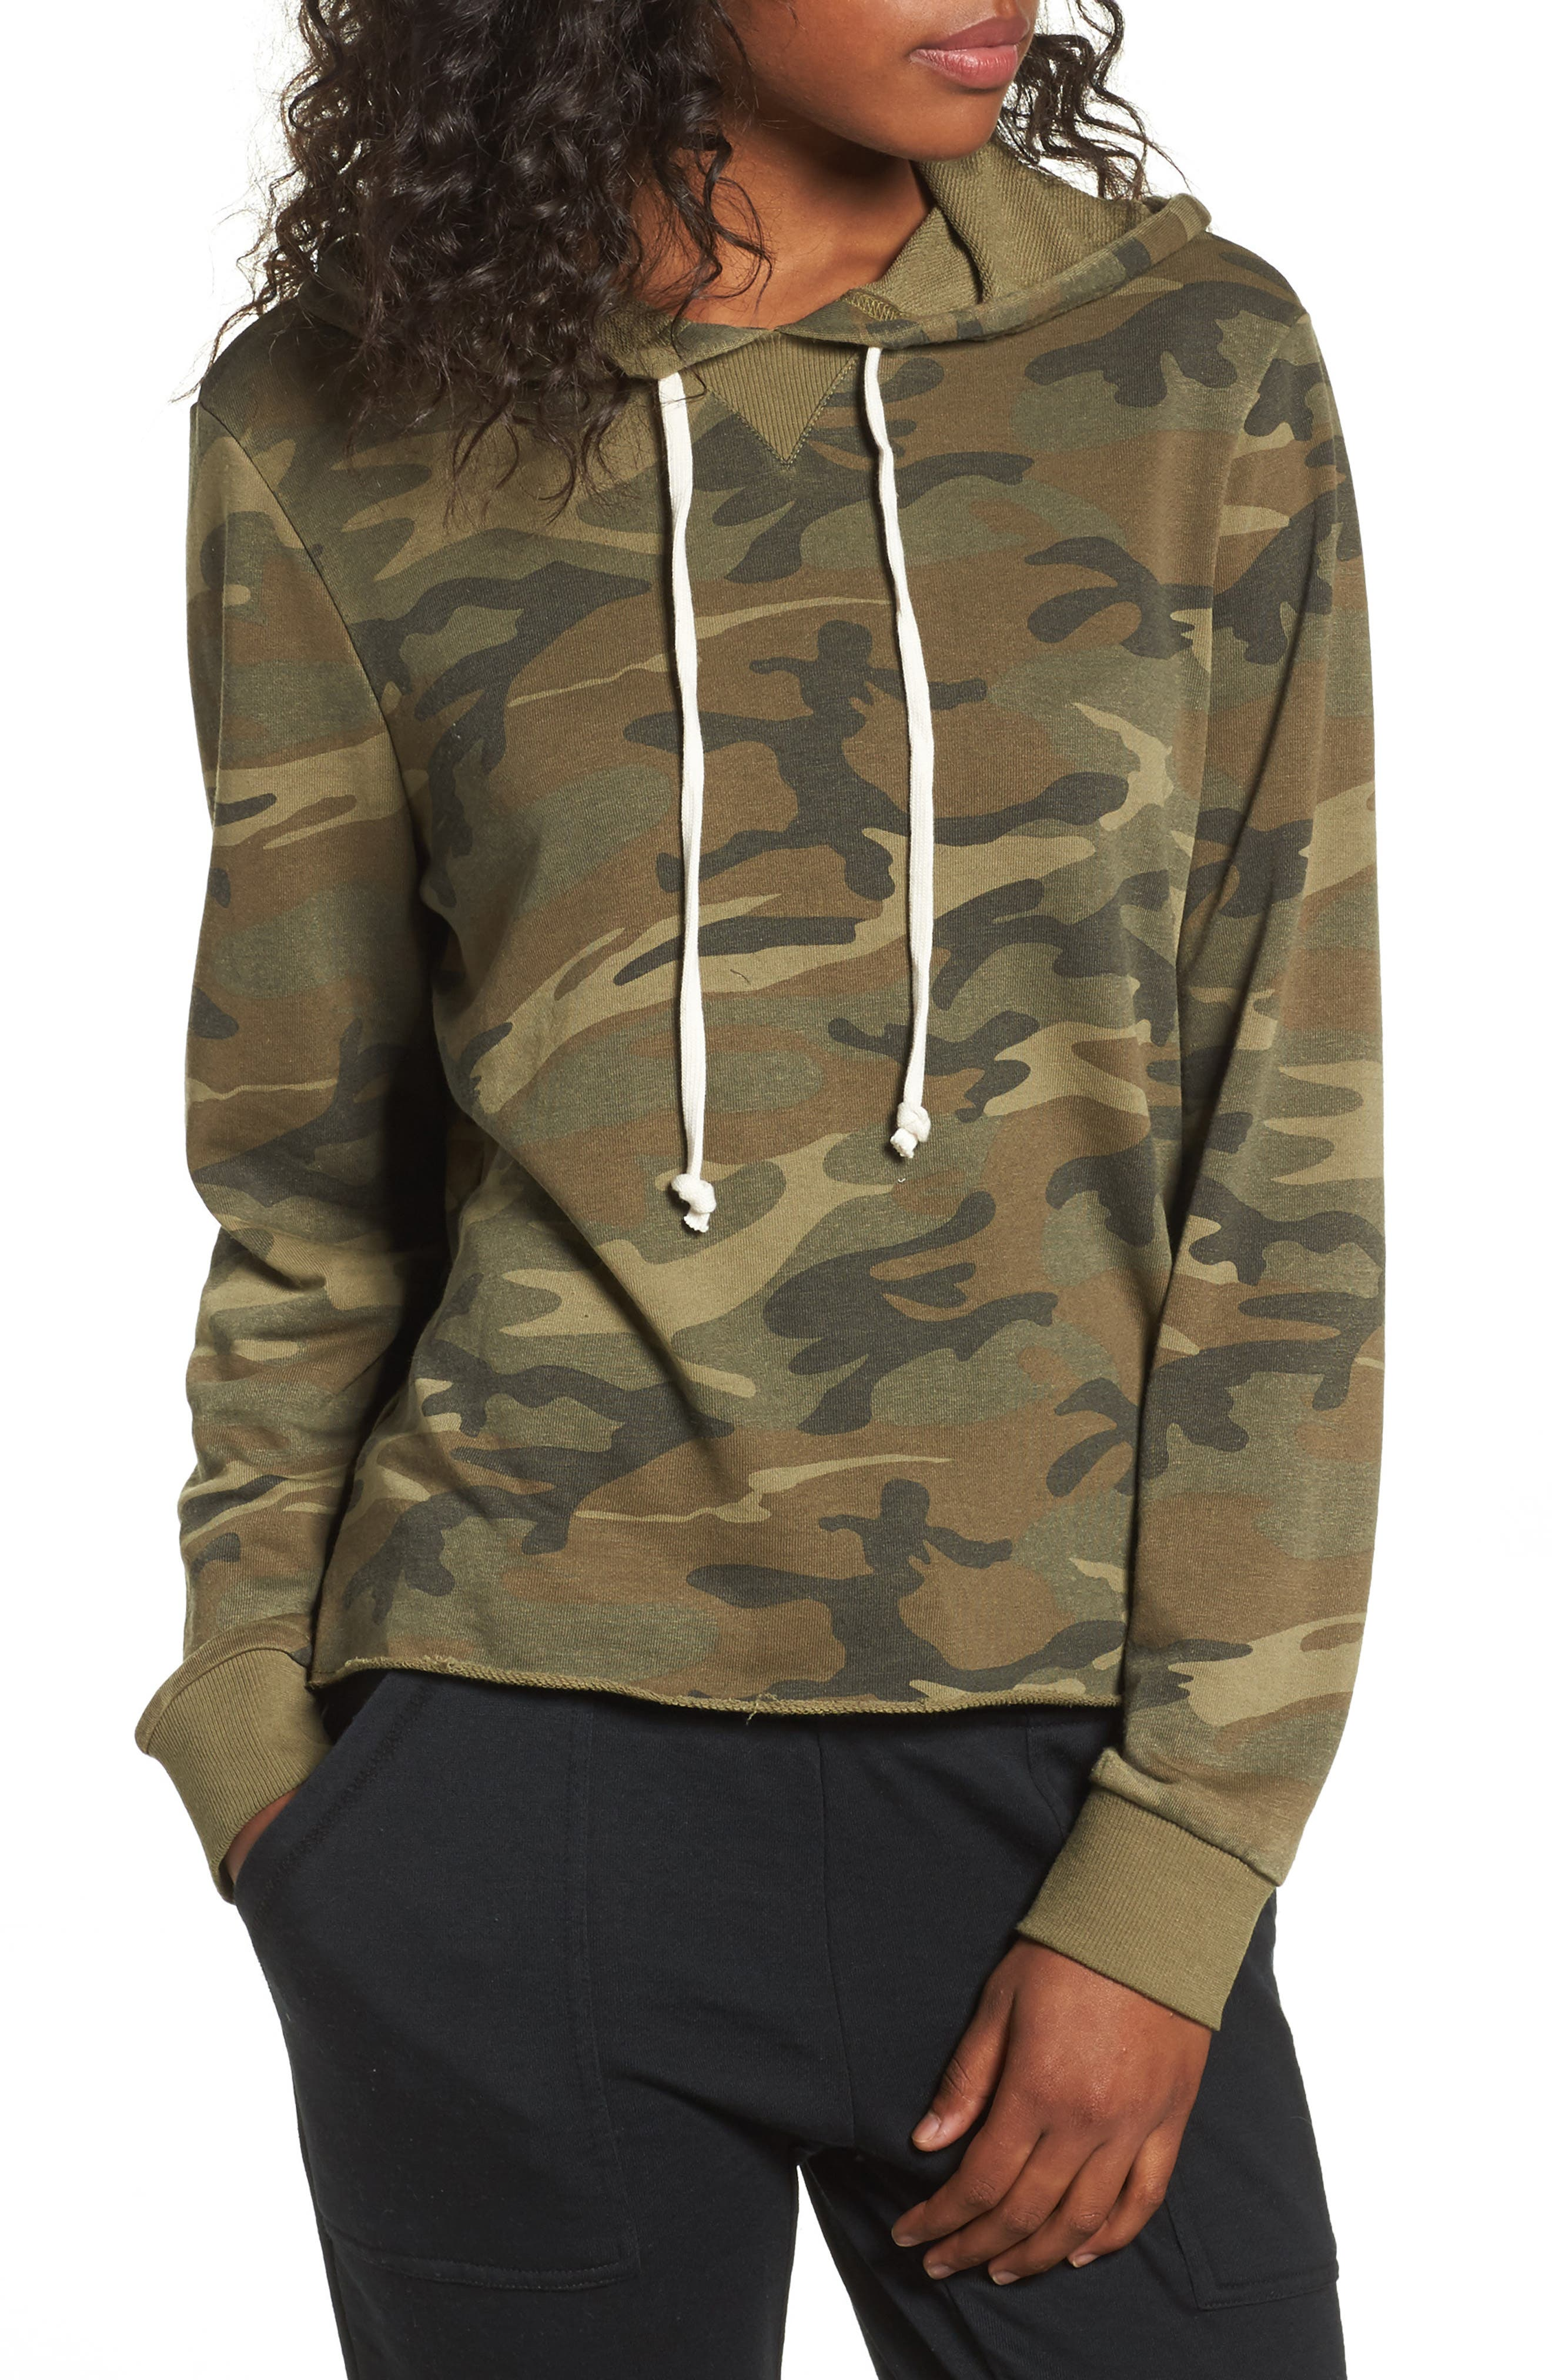 Day Off Hoodie,                             Main thumbnail 1, color,                             Camo